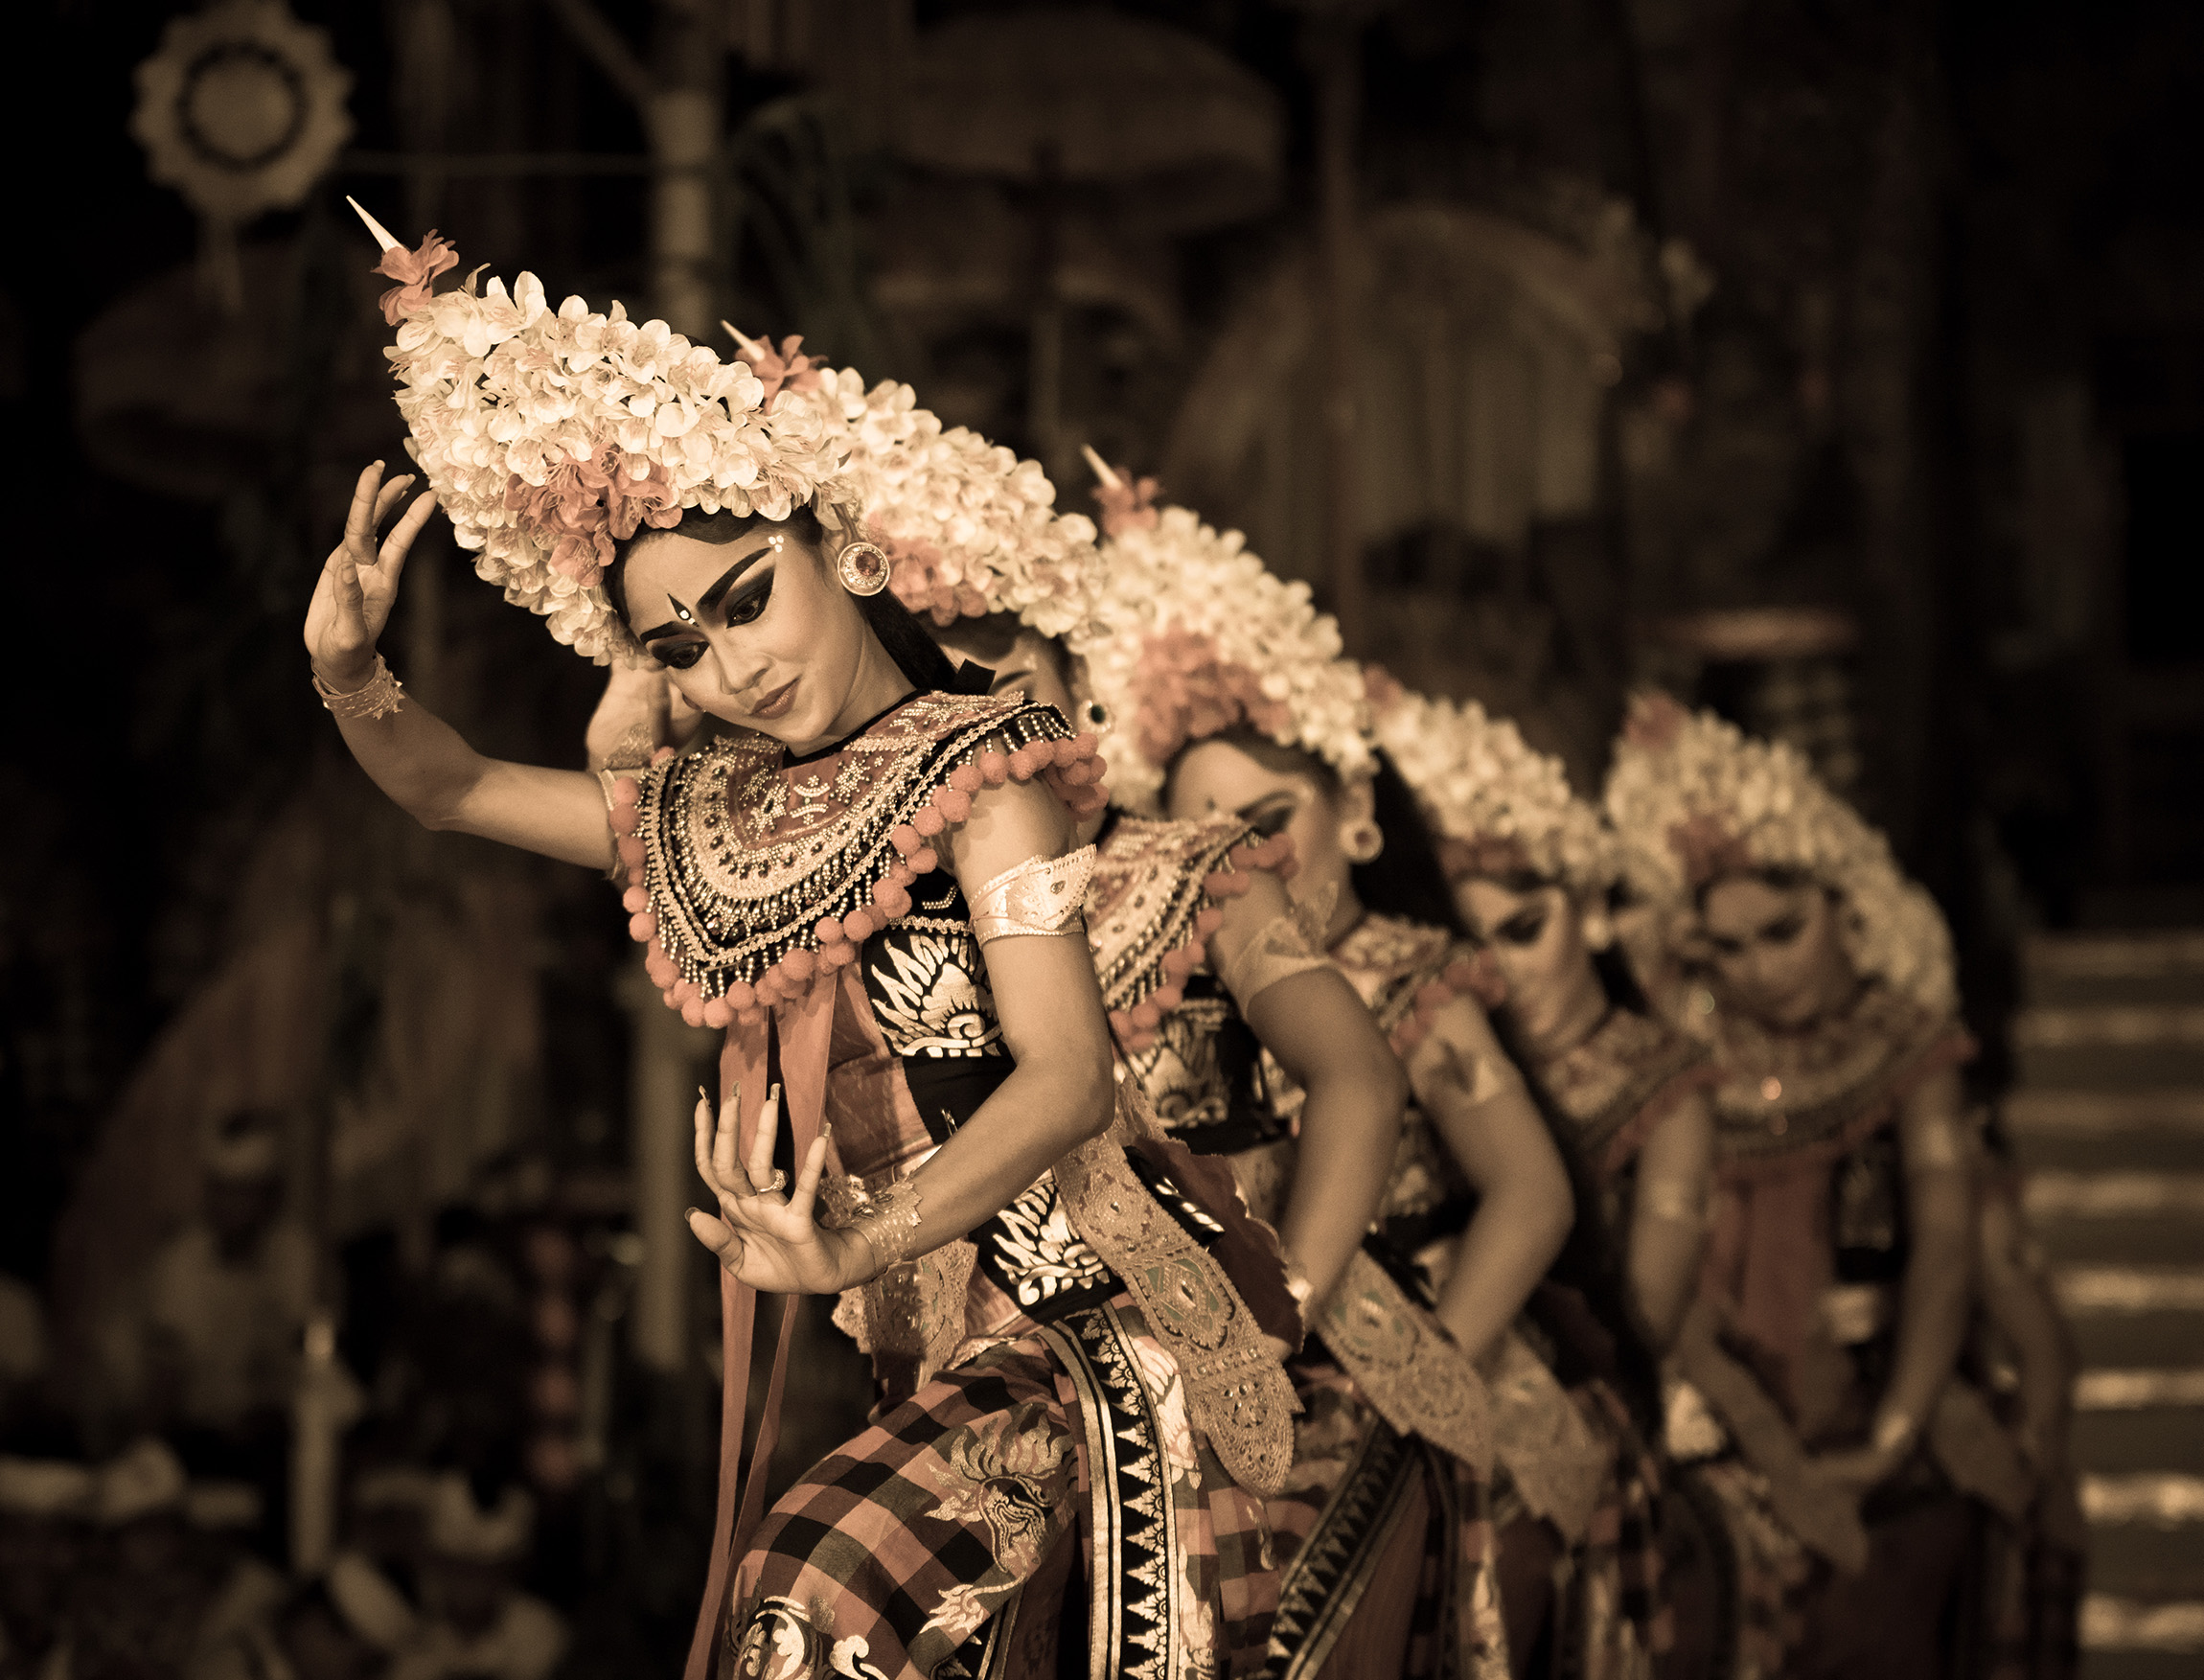 SYMMETRY: These ladies were dancing for the gods at a temple ceremony in the Ubud area of Bali.